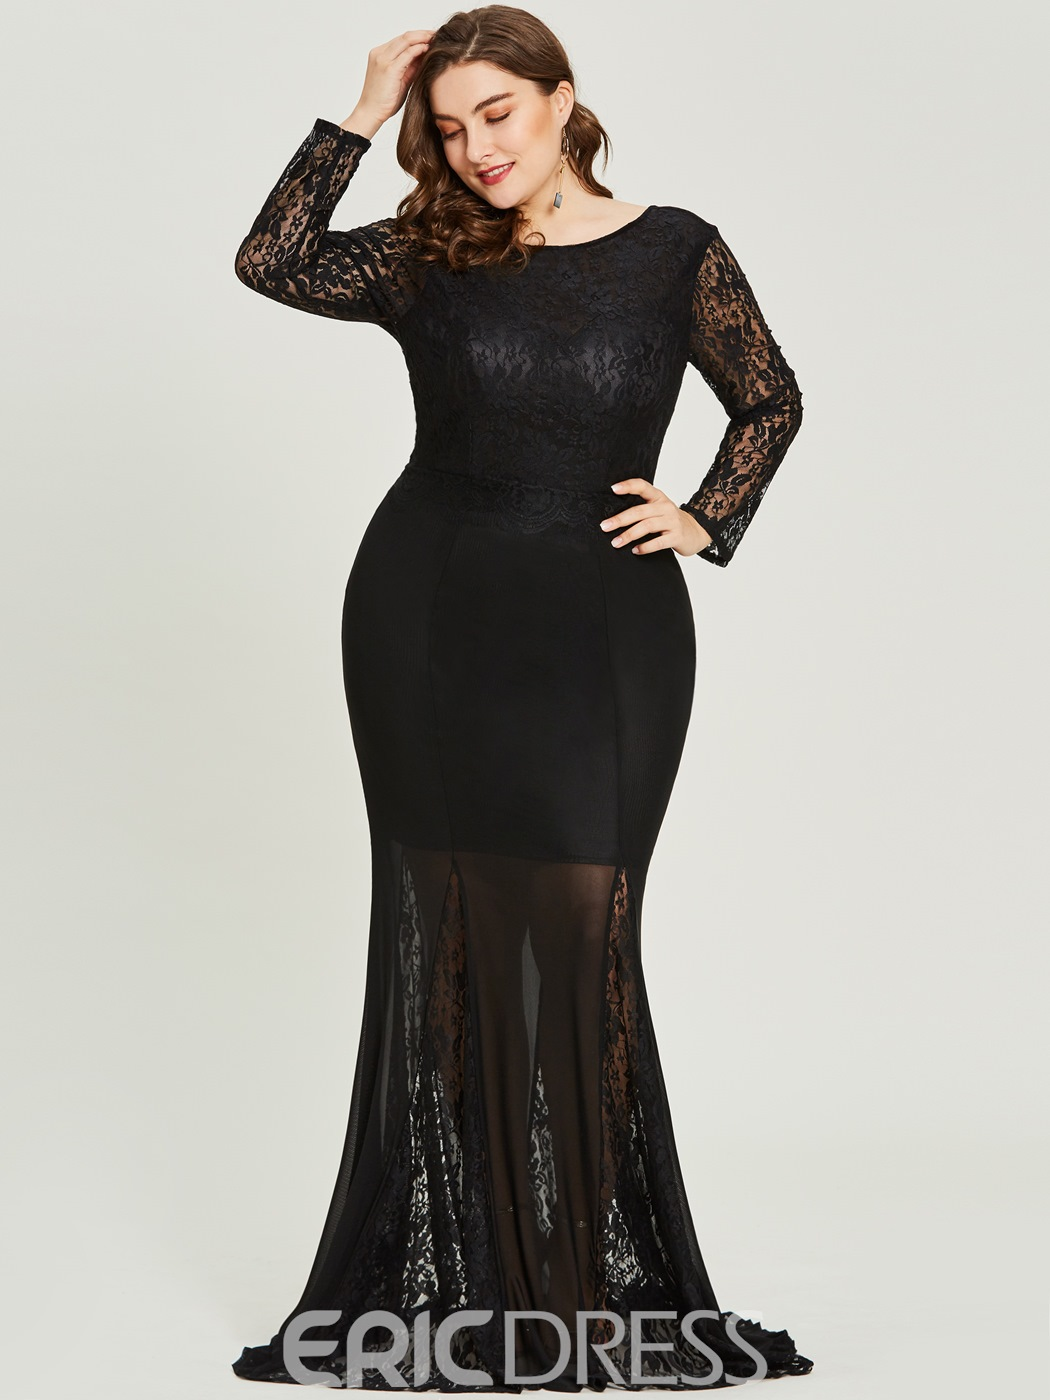 Ericdress Plus Size Scoop Neck Long Sleeves Mermaid Prom Dress